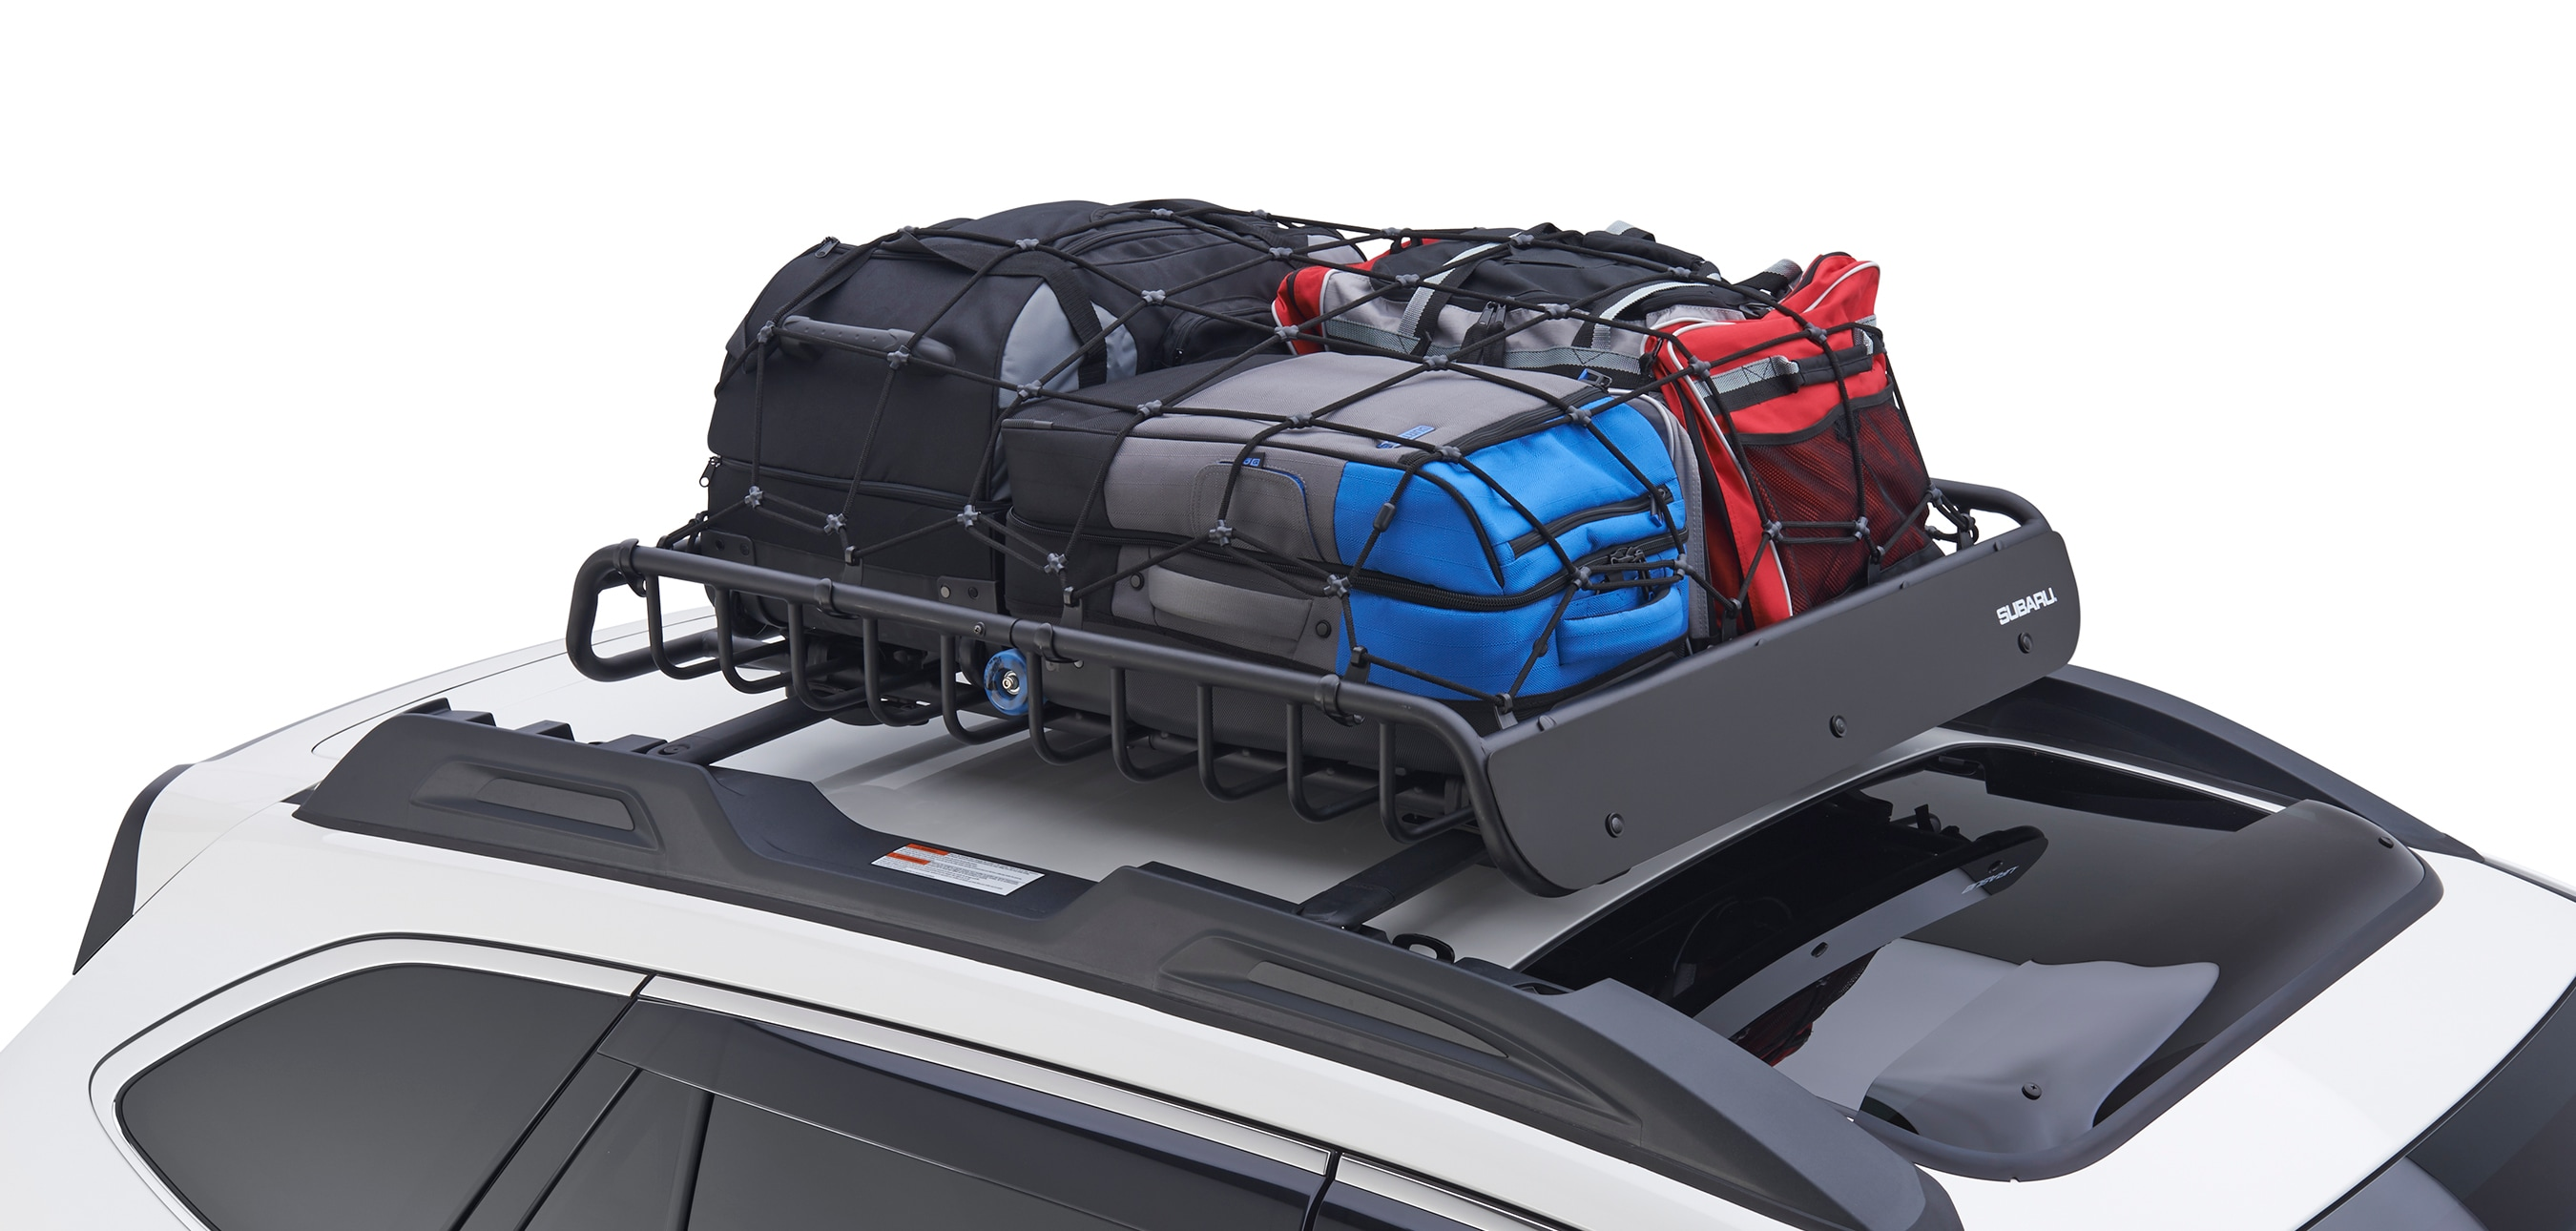 Order a Subaru Roof Cargo Basket at Seller Subaru